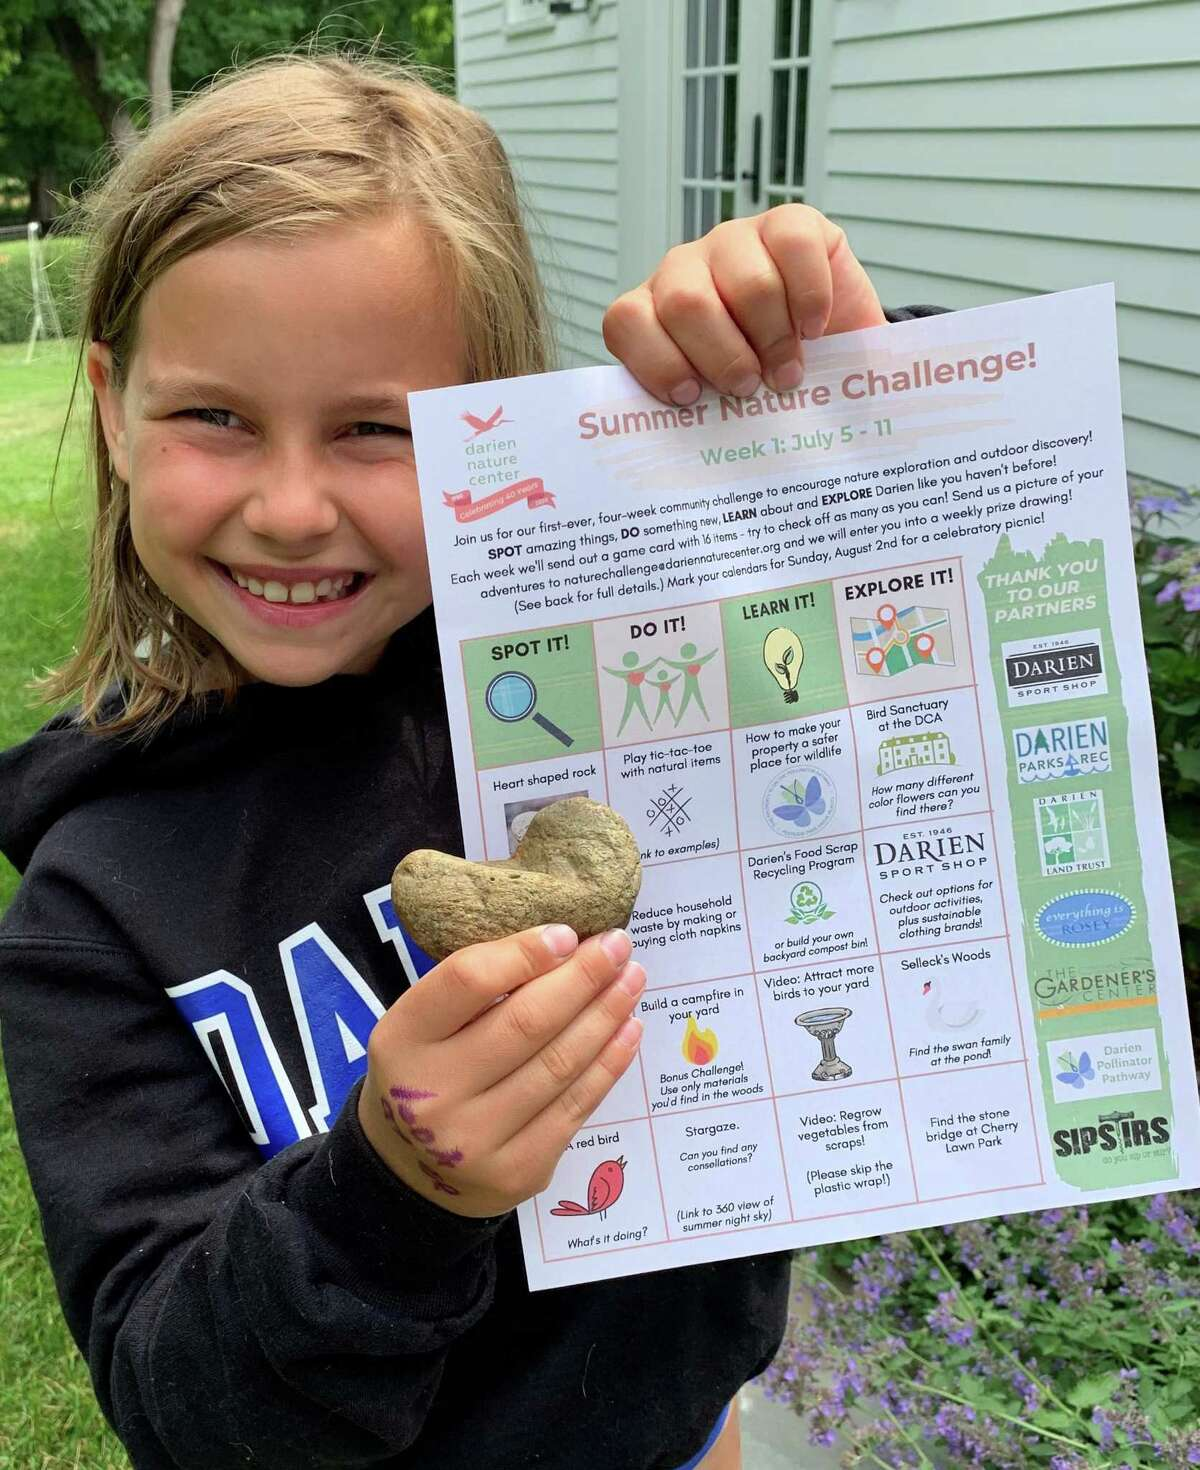 Neve Judelson is doing the summer challenge. Darien Nature Center is partnering with other community organizations and businesses to hold a fun summer challenge for the community.